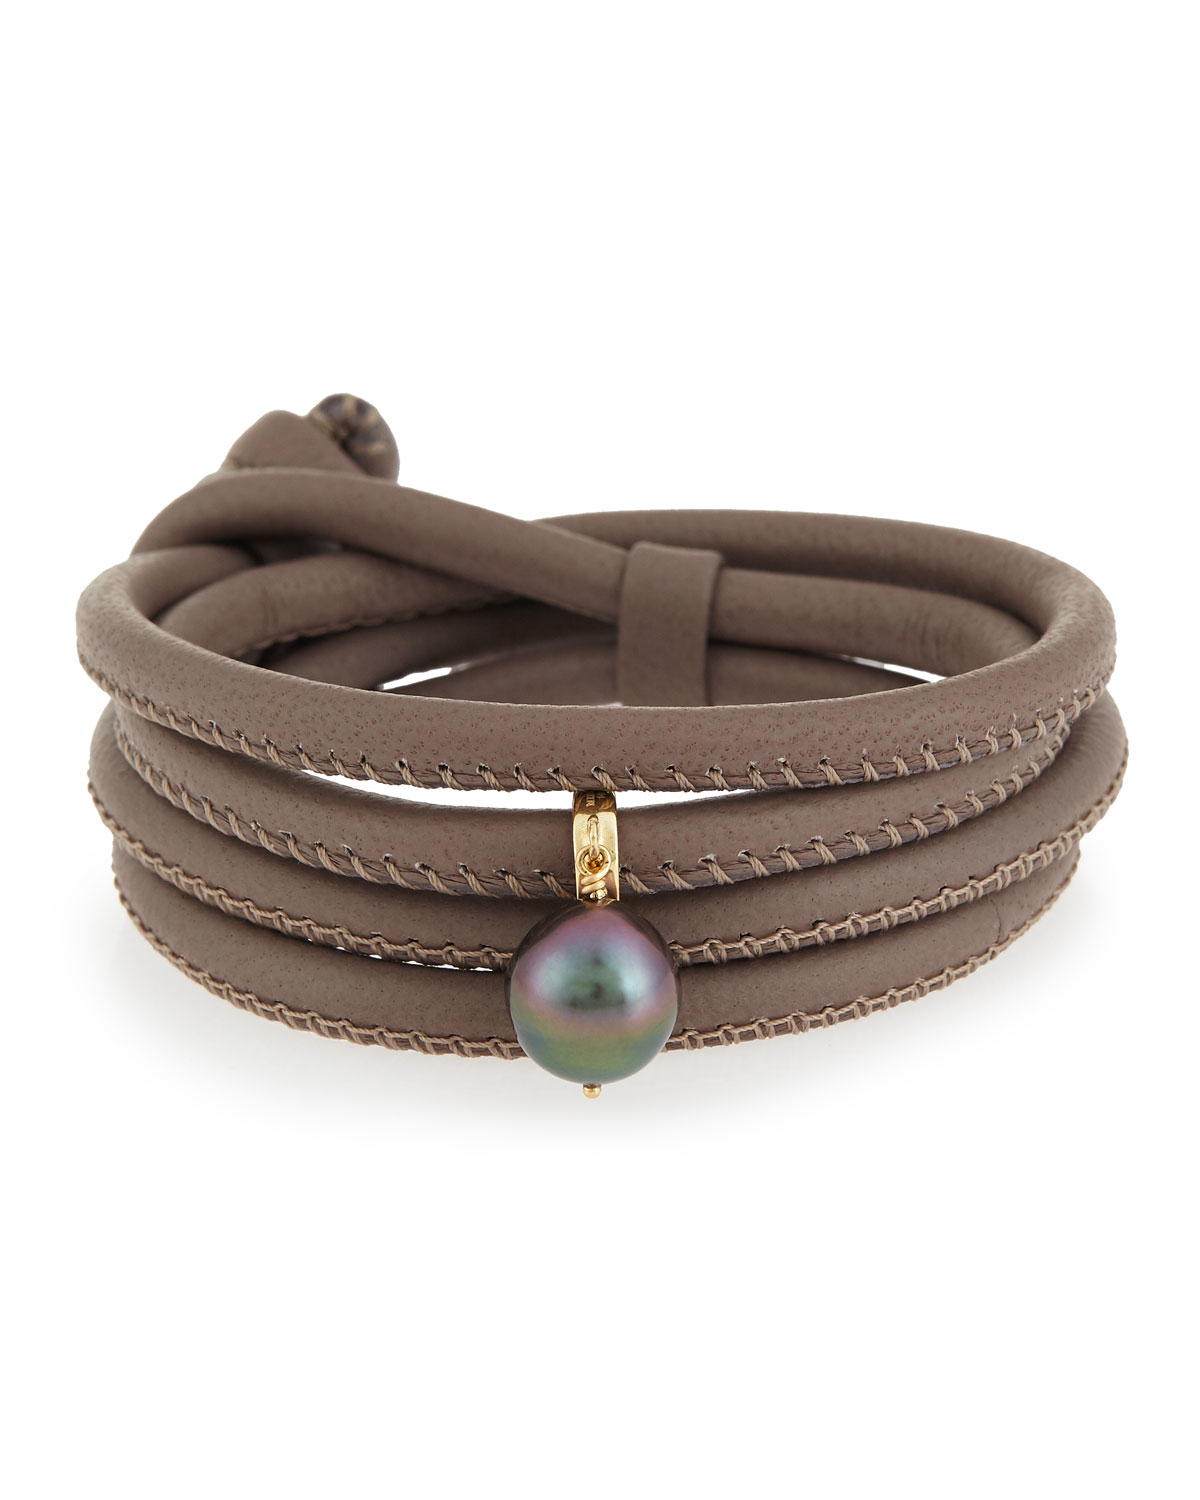 Leather Wrap Charm Bracelet: Mizuki Convertible Leather Wrap Bracelet/choker With Pearl